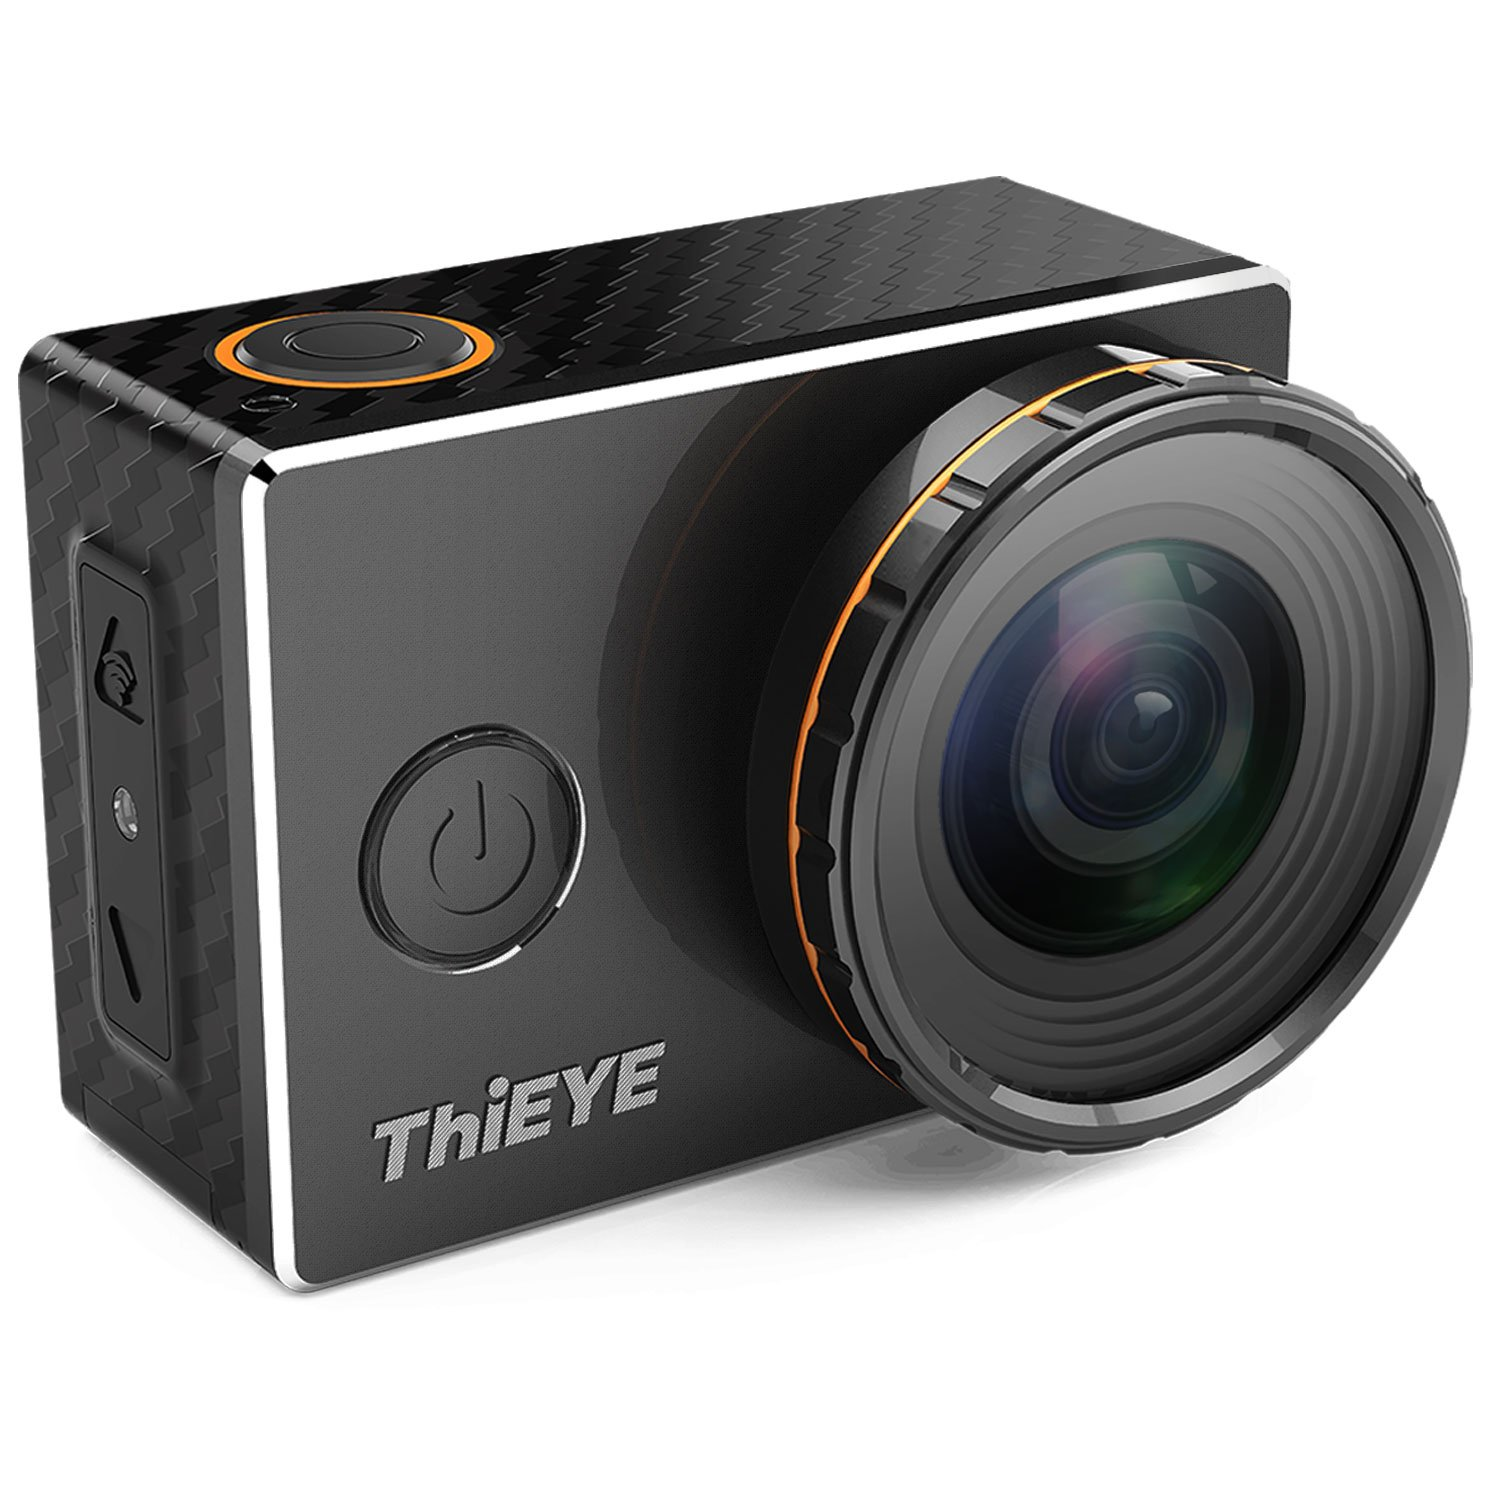 "ThiEYE 4K Action Camera Wifi Waterproof Sport Video Camera 12MP Full HD 2"" Screen with Multiple Modes, 170 Wide Angle, 197FT Waterproof, App Control and Full Accessories (V5s)"